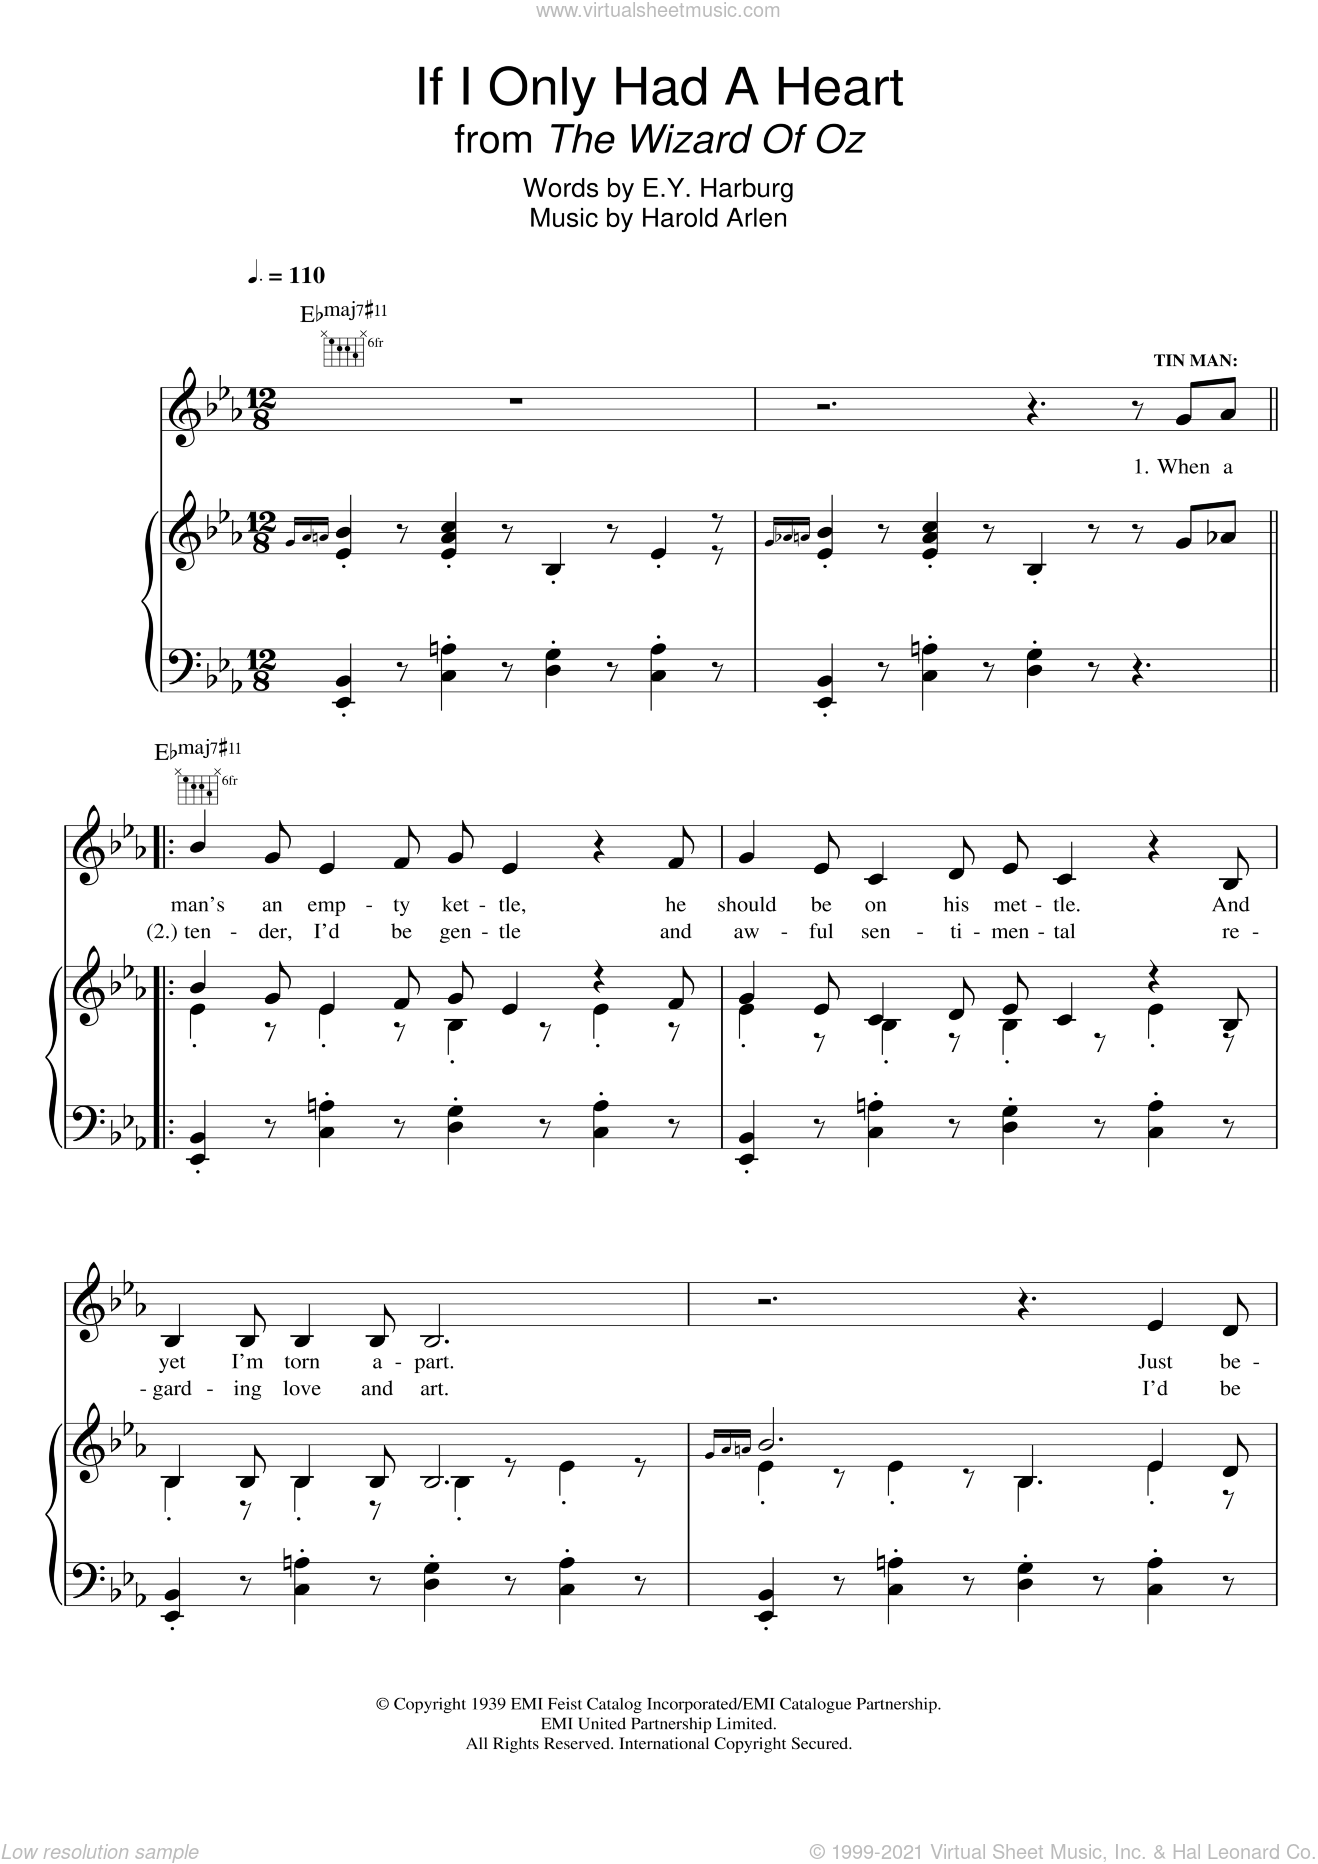 If I Only Had A Heart (from 'The Wizard Of Oz') sheet music for voice, piano or guitar by Harold Arlen and E.Y. Harburg, intermediate skill level